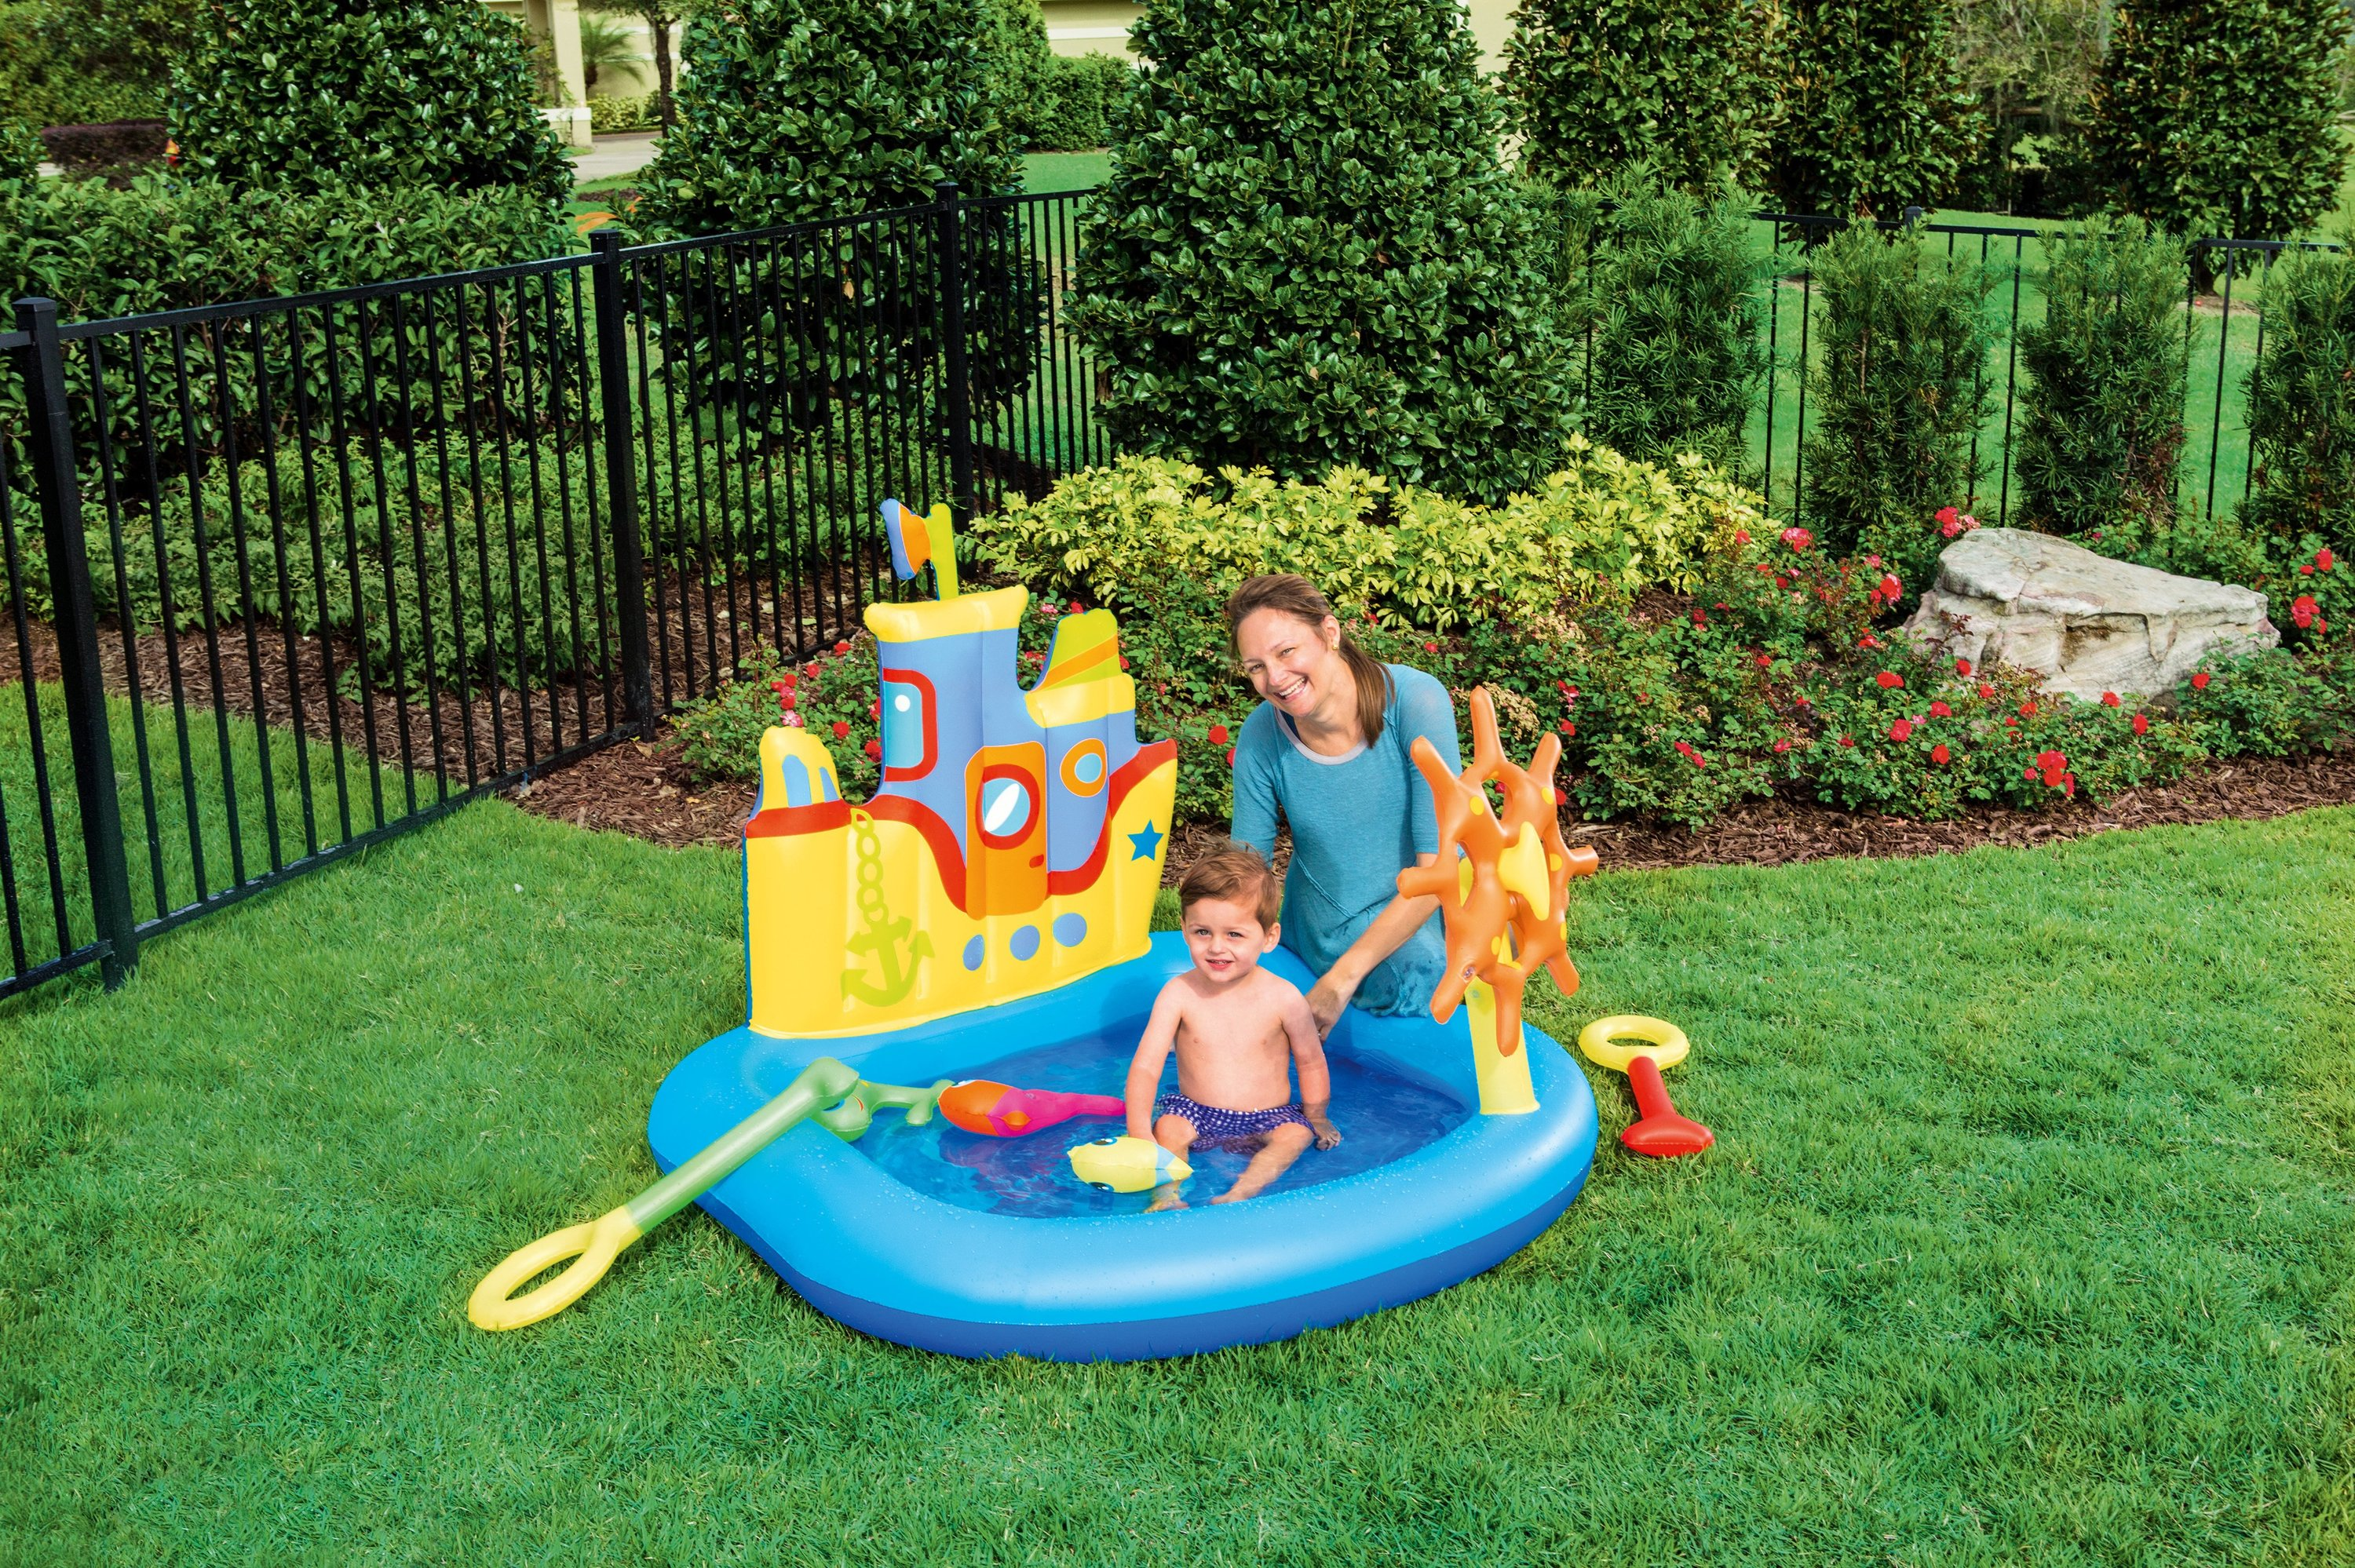 Bestway Playcenter tug children's pool